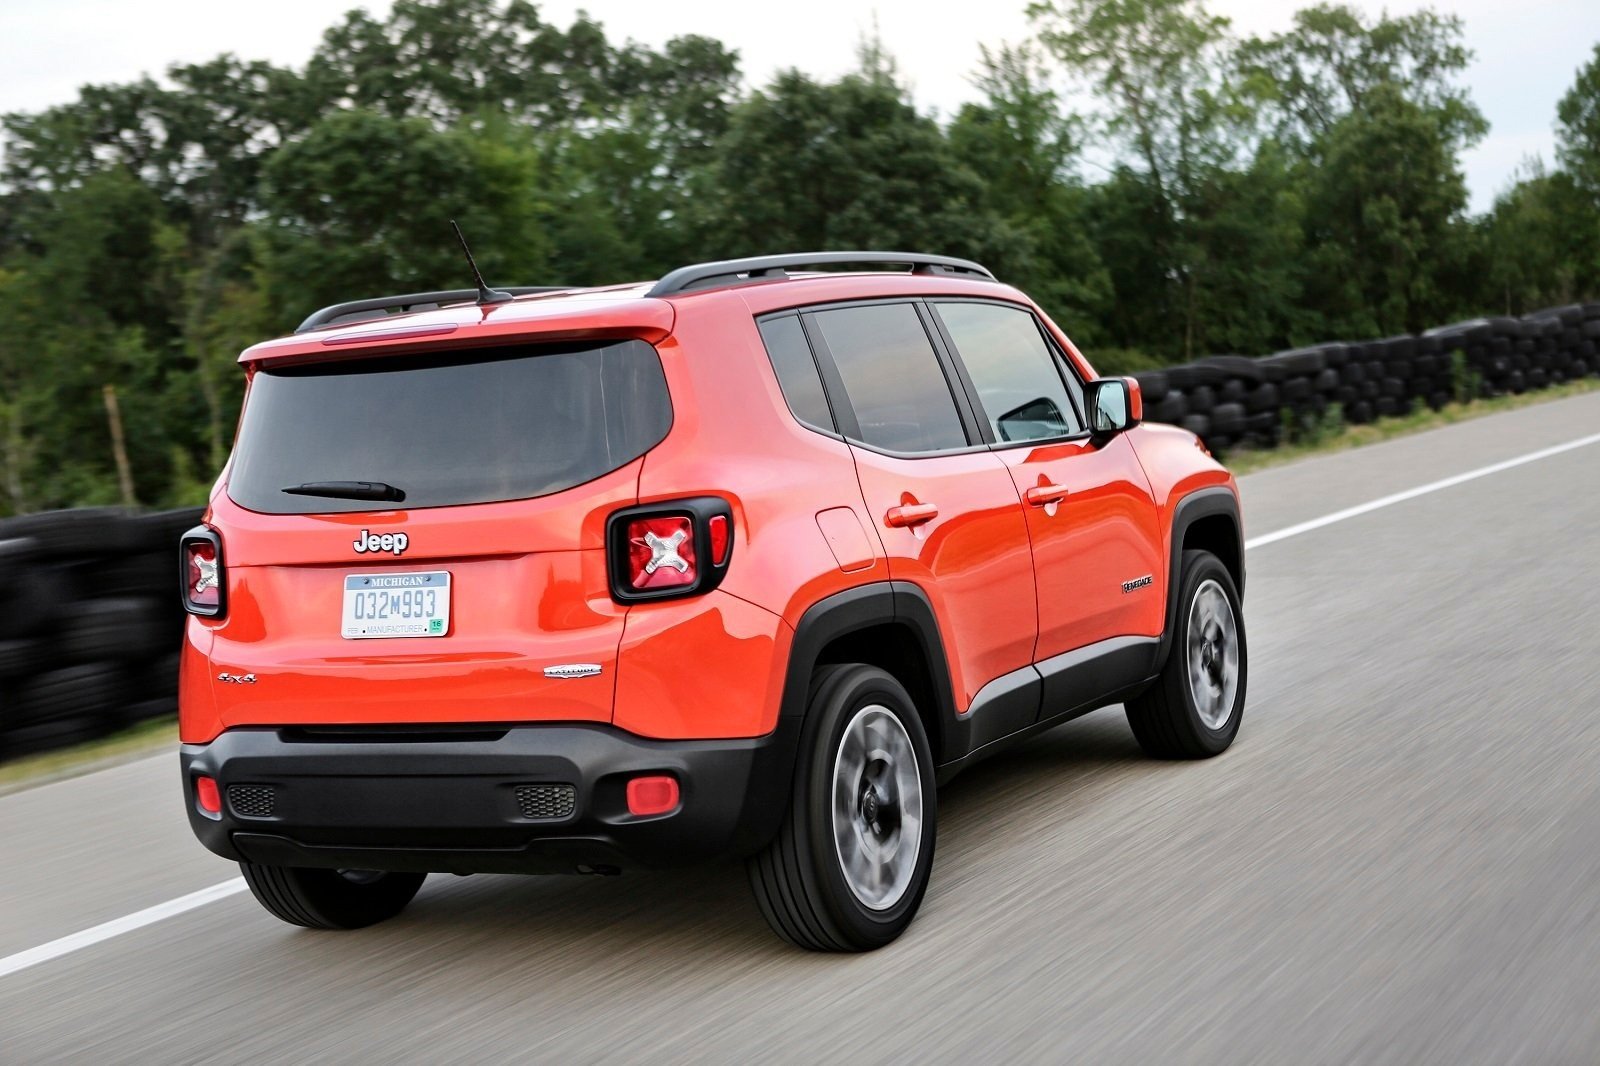 The view behind Jeep Renegade